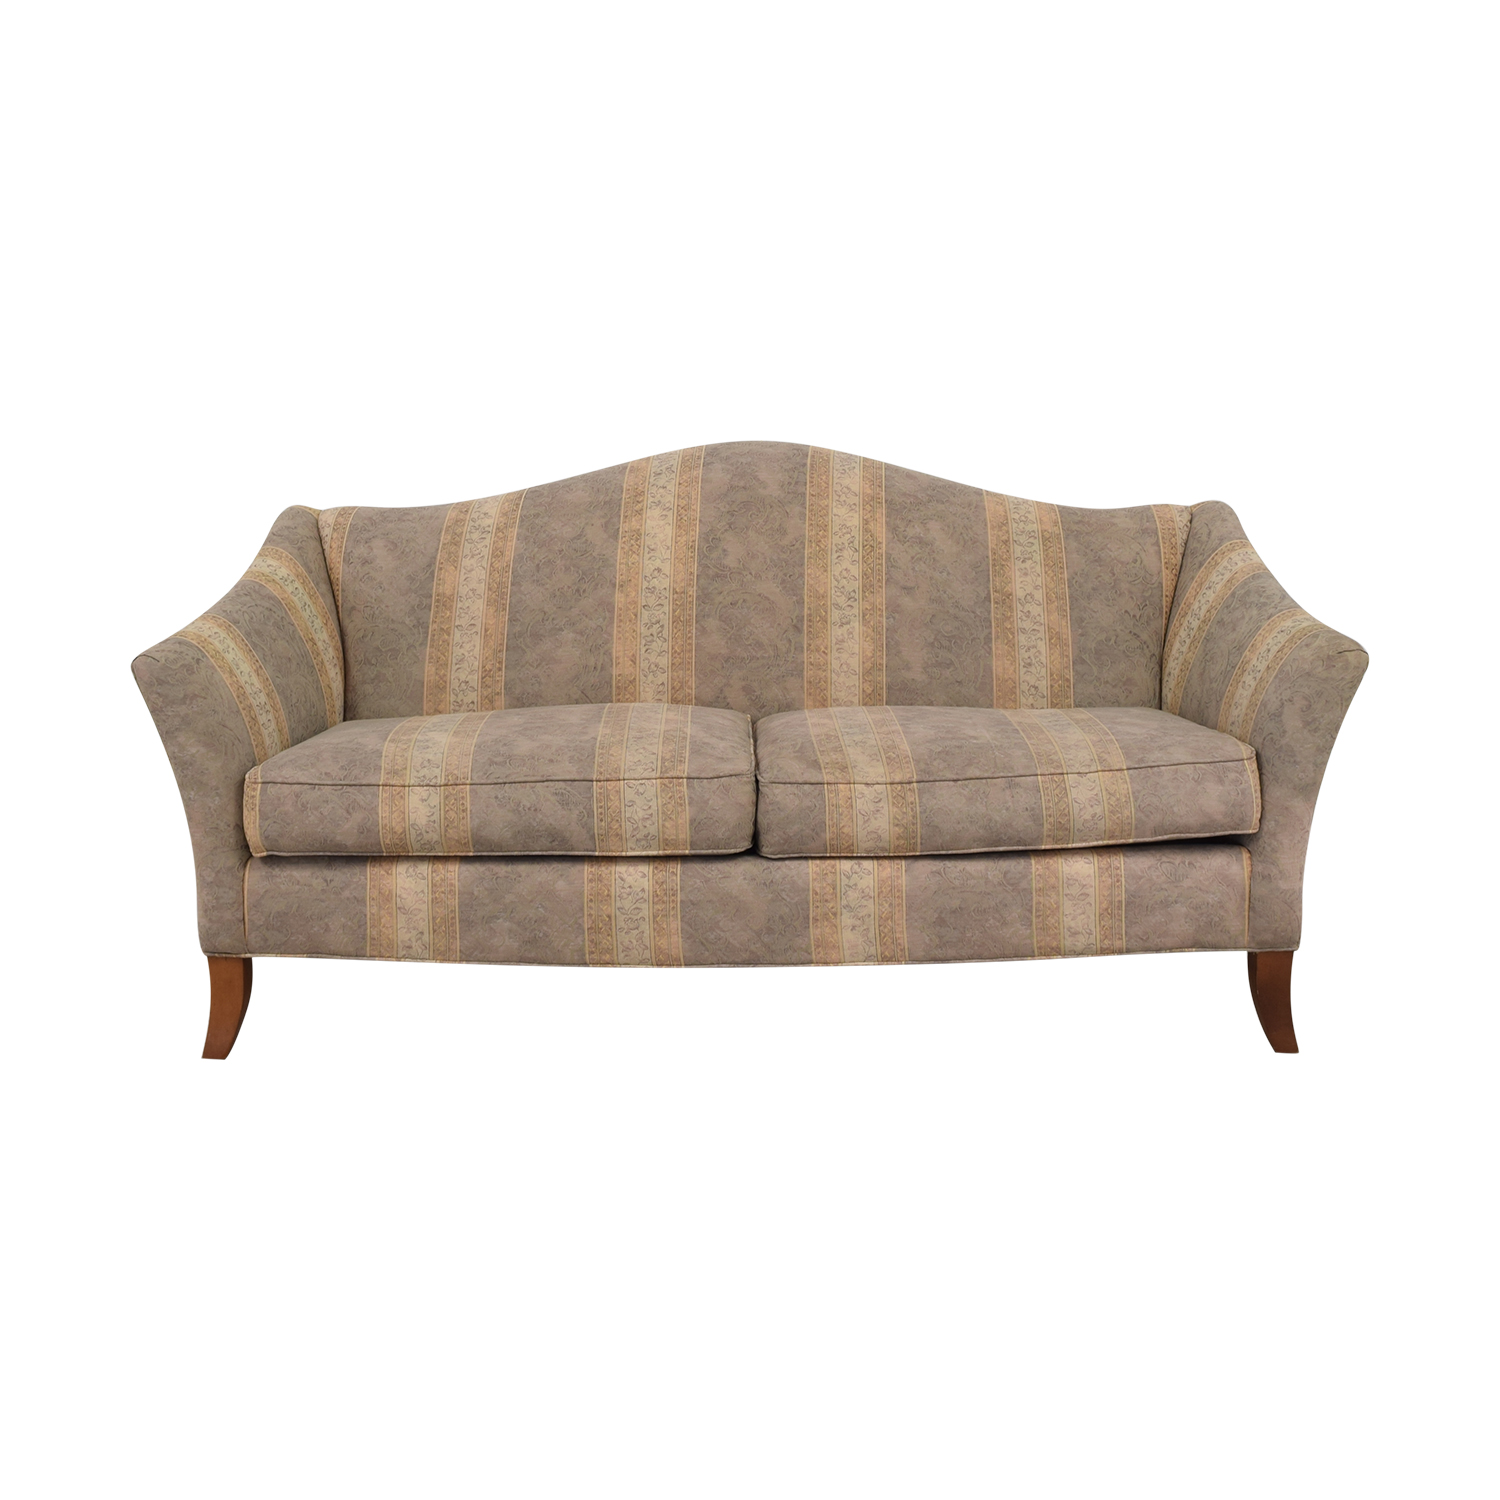 Thomasville Fabric Sofa Thomasville